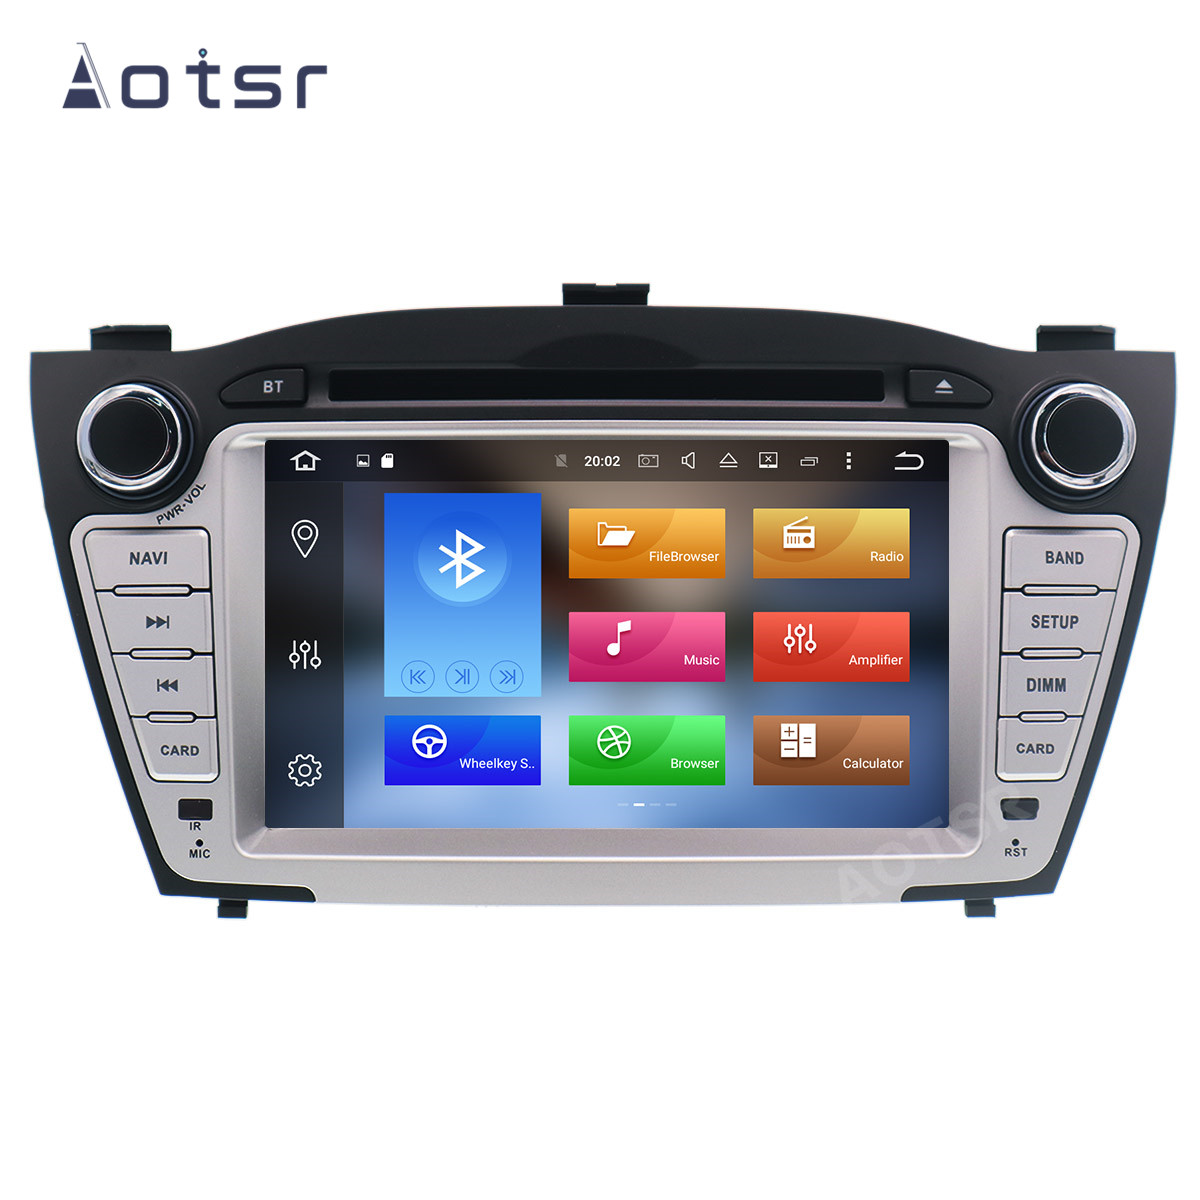 AOTSR <font><b>2</b></font> <font><b>Din</b></font> Android 10 <font><b>Car</b></font> <font><b>Radio</b></font> <font><b>For</b></font> <font><b>Hyundai</b></font> IX35 <font><b>Tucson</b></font> 2009 - 2018 Central Multimedia Player GPS Navigation 2Din DSP Autoradio image